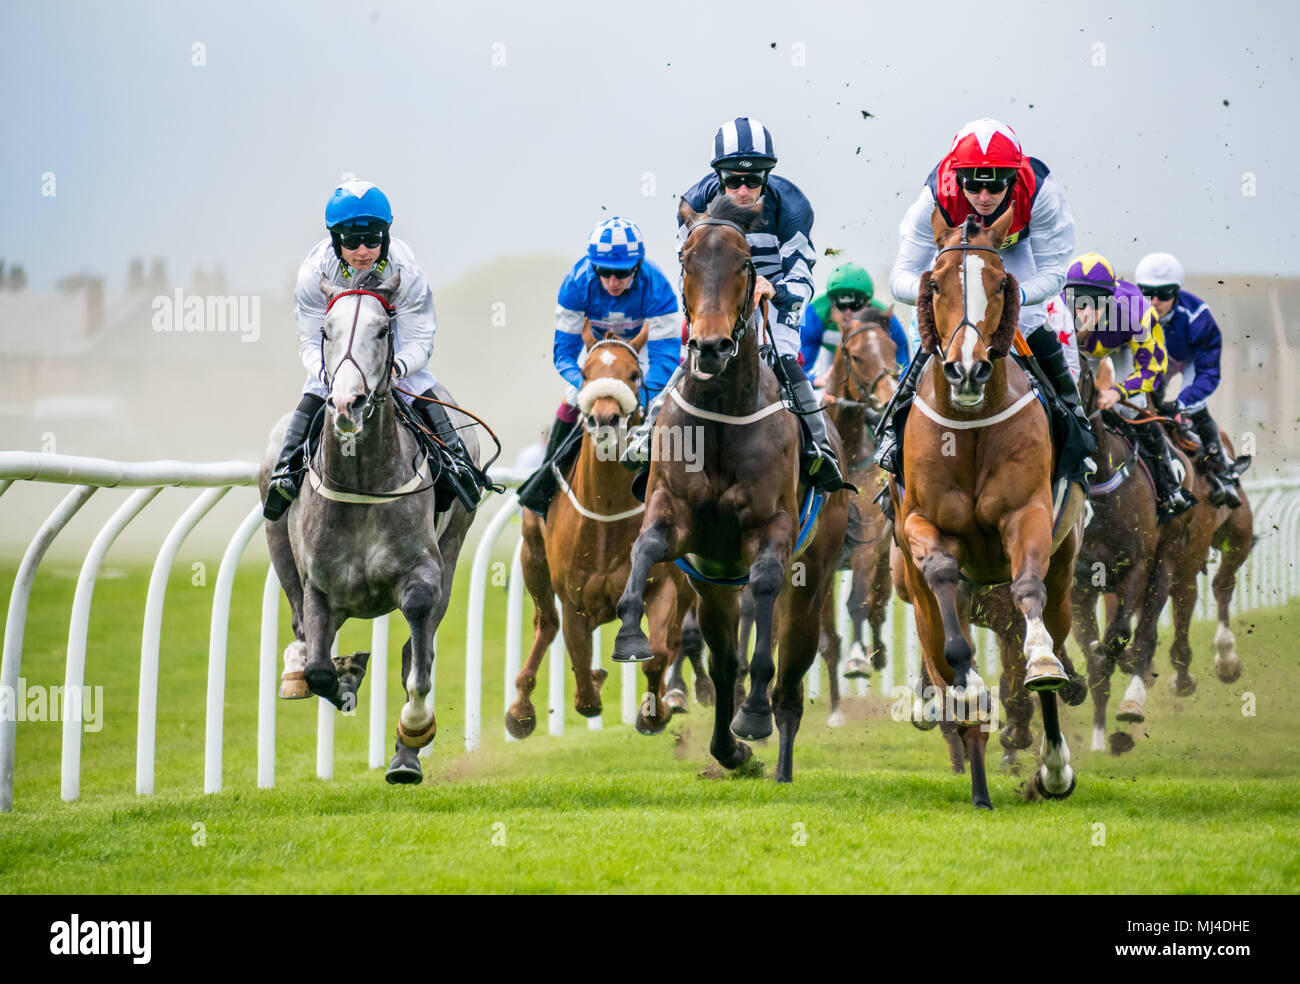 Musselburgh, Scotland, 4 May 2018. Musselburgh Race Course, Musselburgh, East Lothian, Scotland, United Kingdom. Race horses thunder past at the afternoon flat racing meet. The 3.10 Jackson Boyd Lawyers-More than Just Handicap Stock Photo